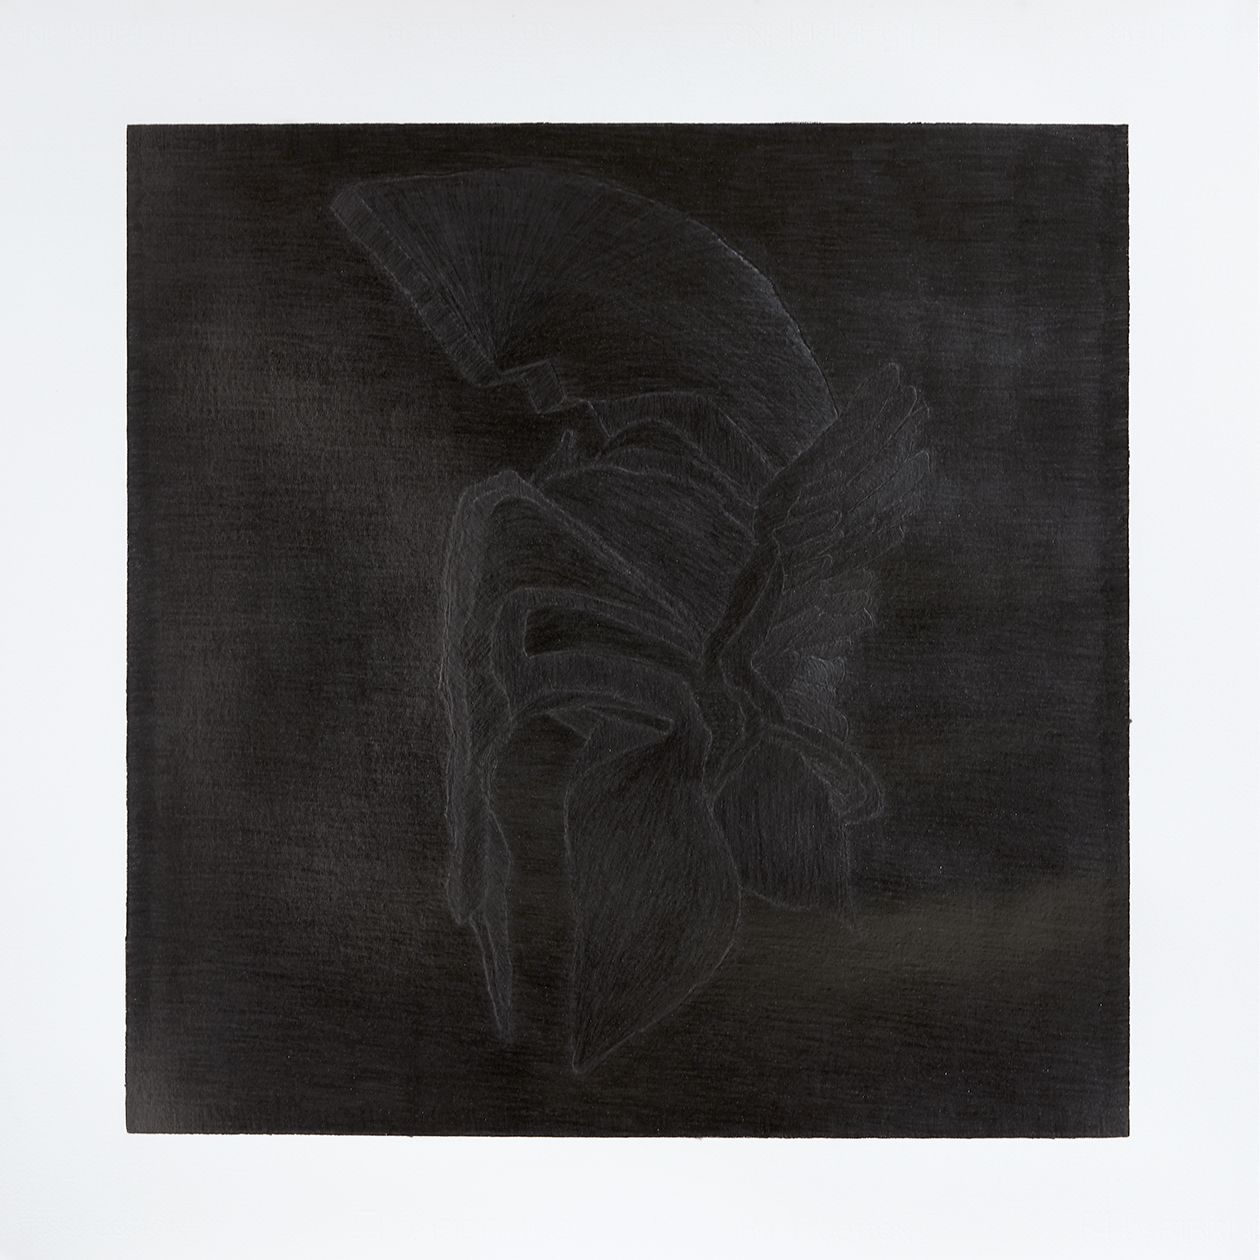 Untitled (Mercury), 2017, pencil on paper, 70x70 cm